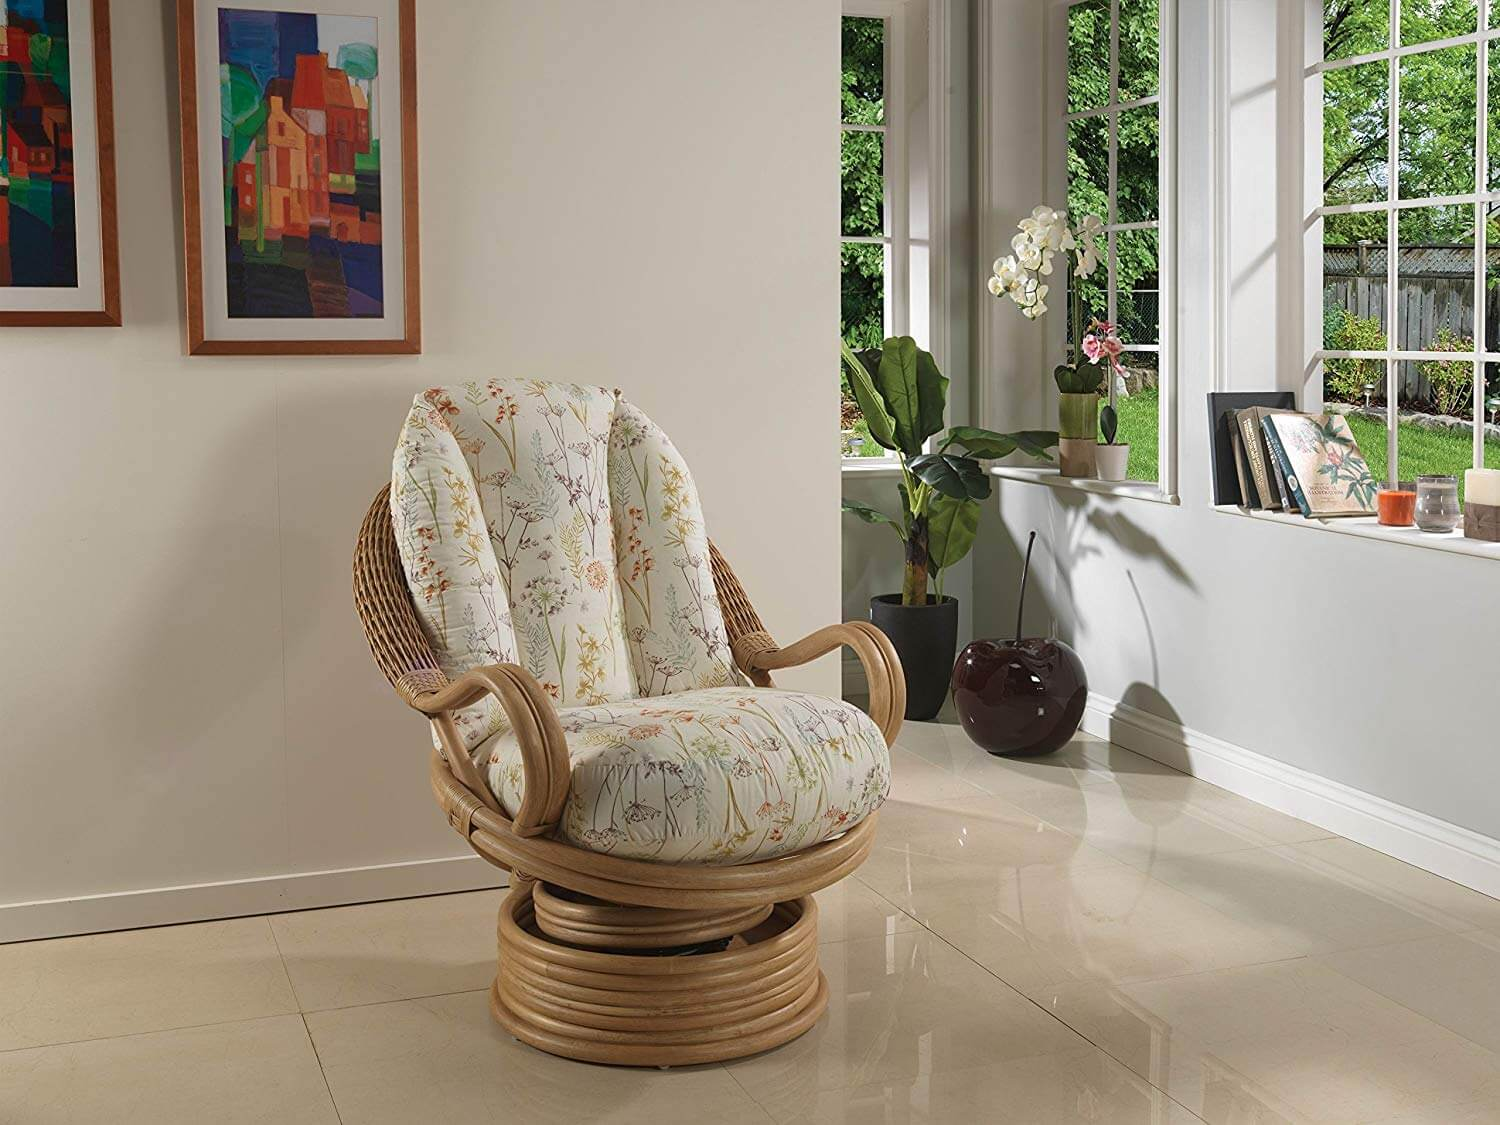 8 Styles Of Conservatory Chairs To Get Relax Anywhere